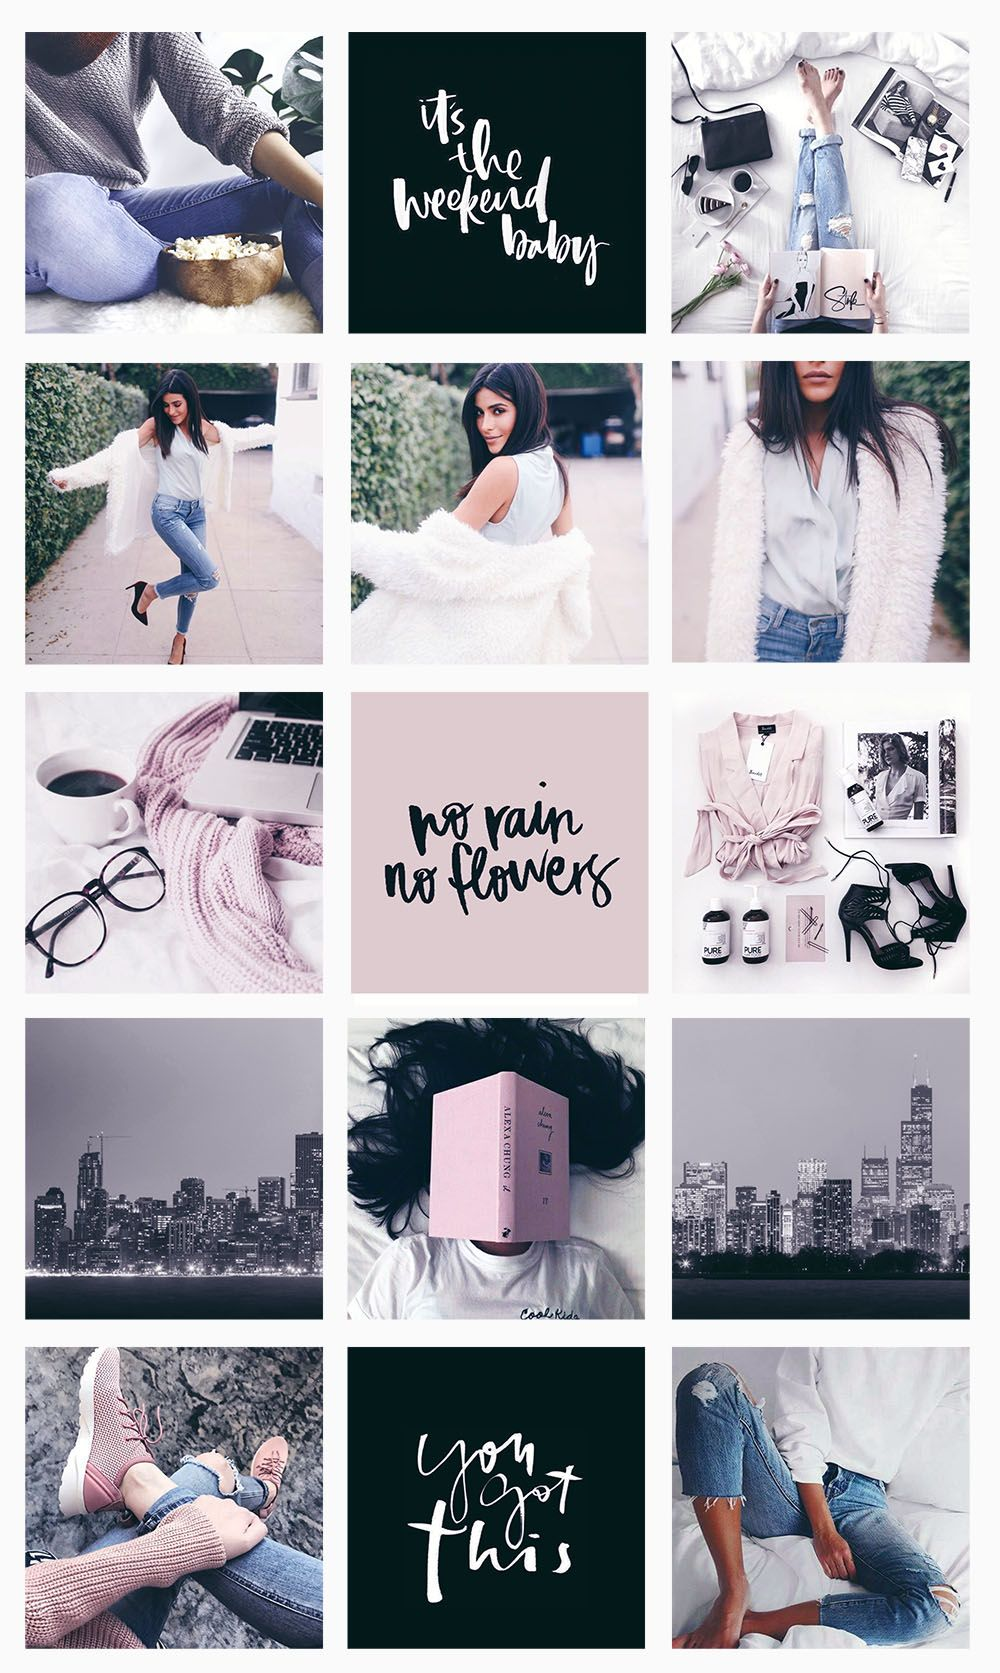 Instagram Feed Aesthetic: The Blogger One | Instagram feed ...